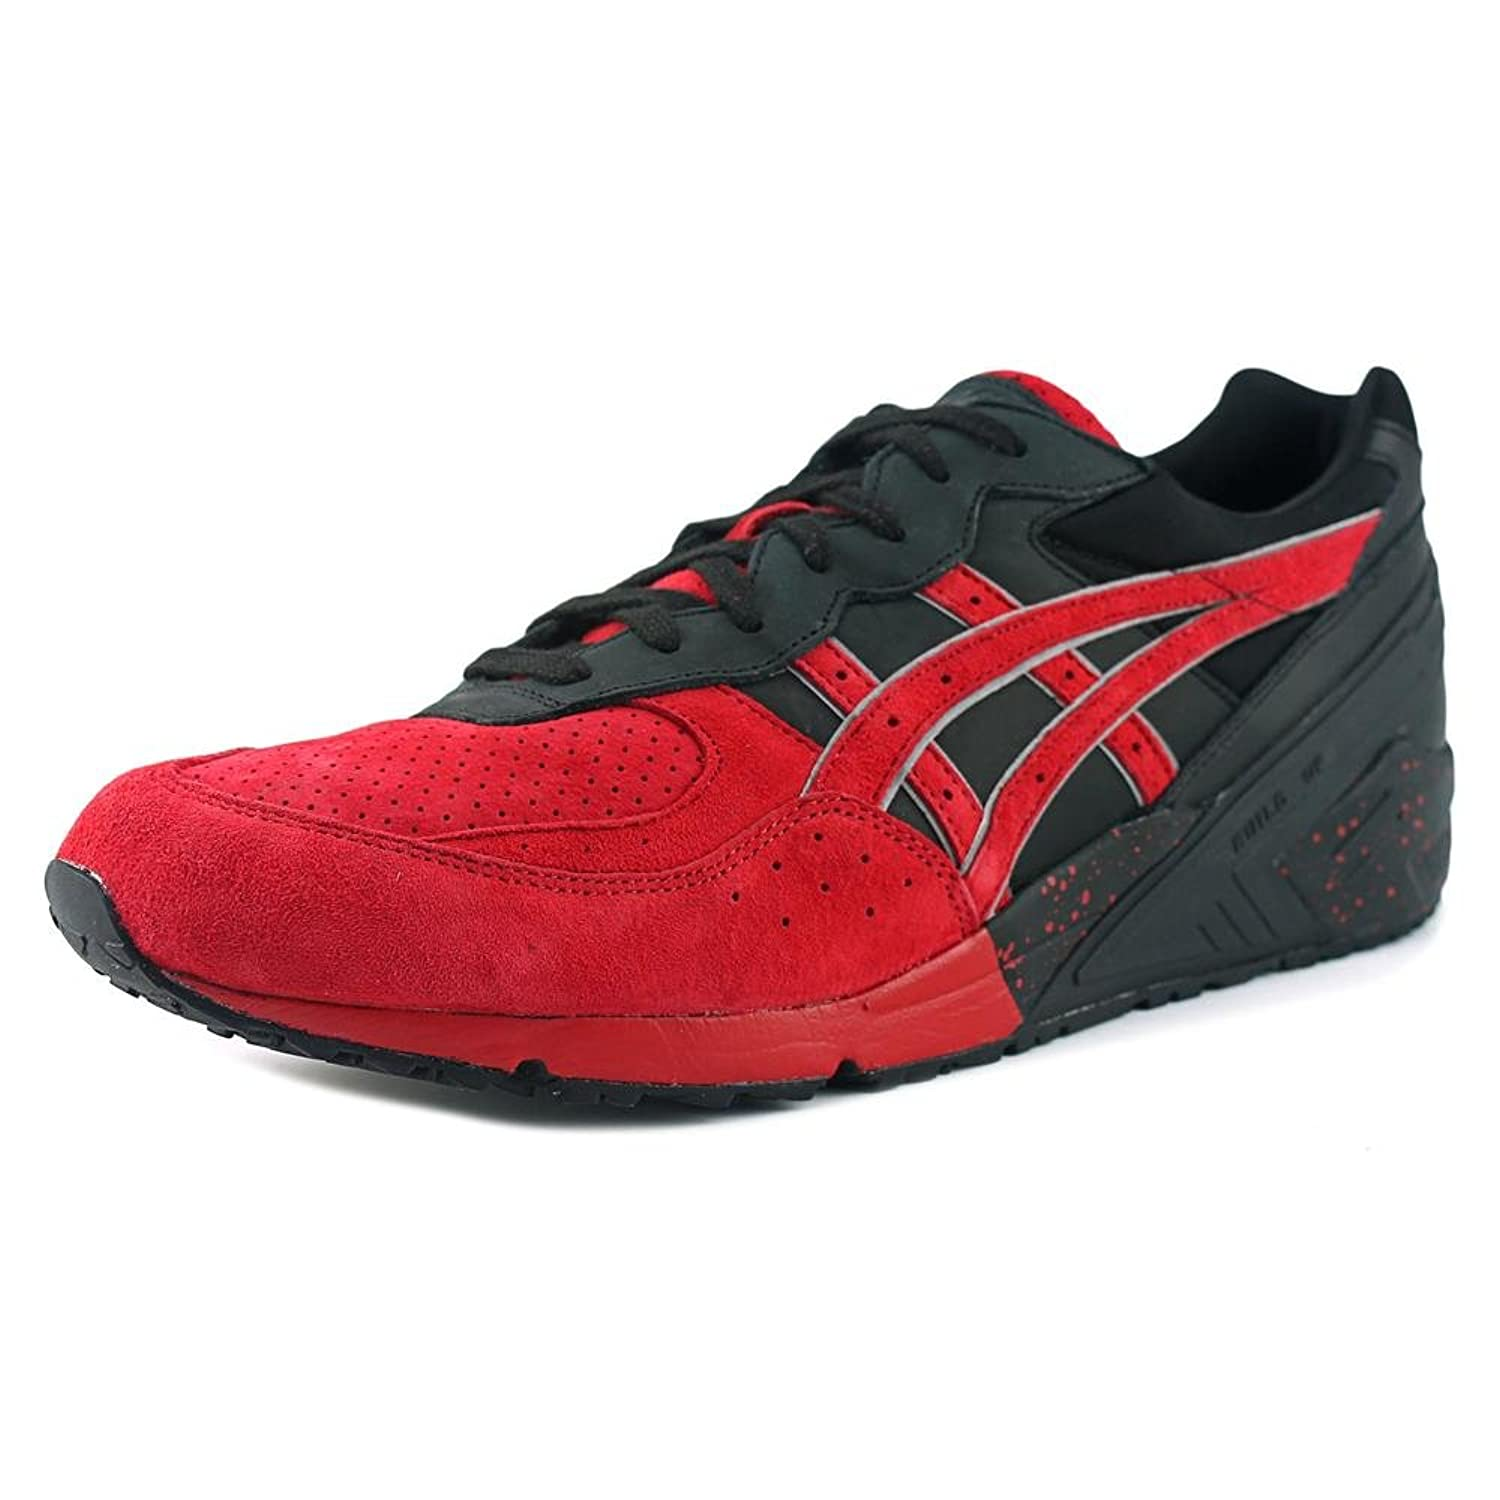 asics gel speedstar 6 review